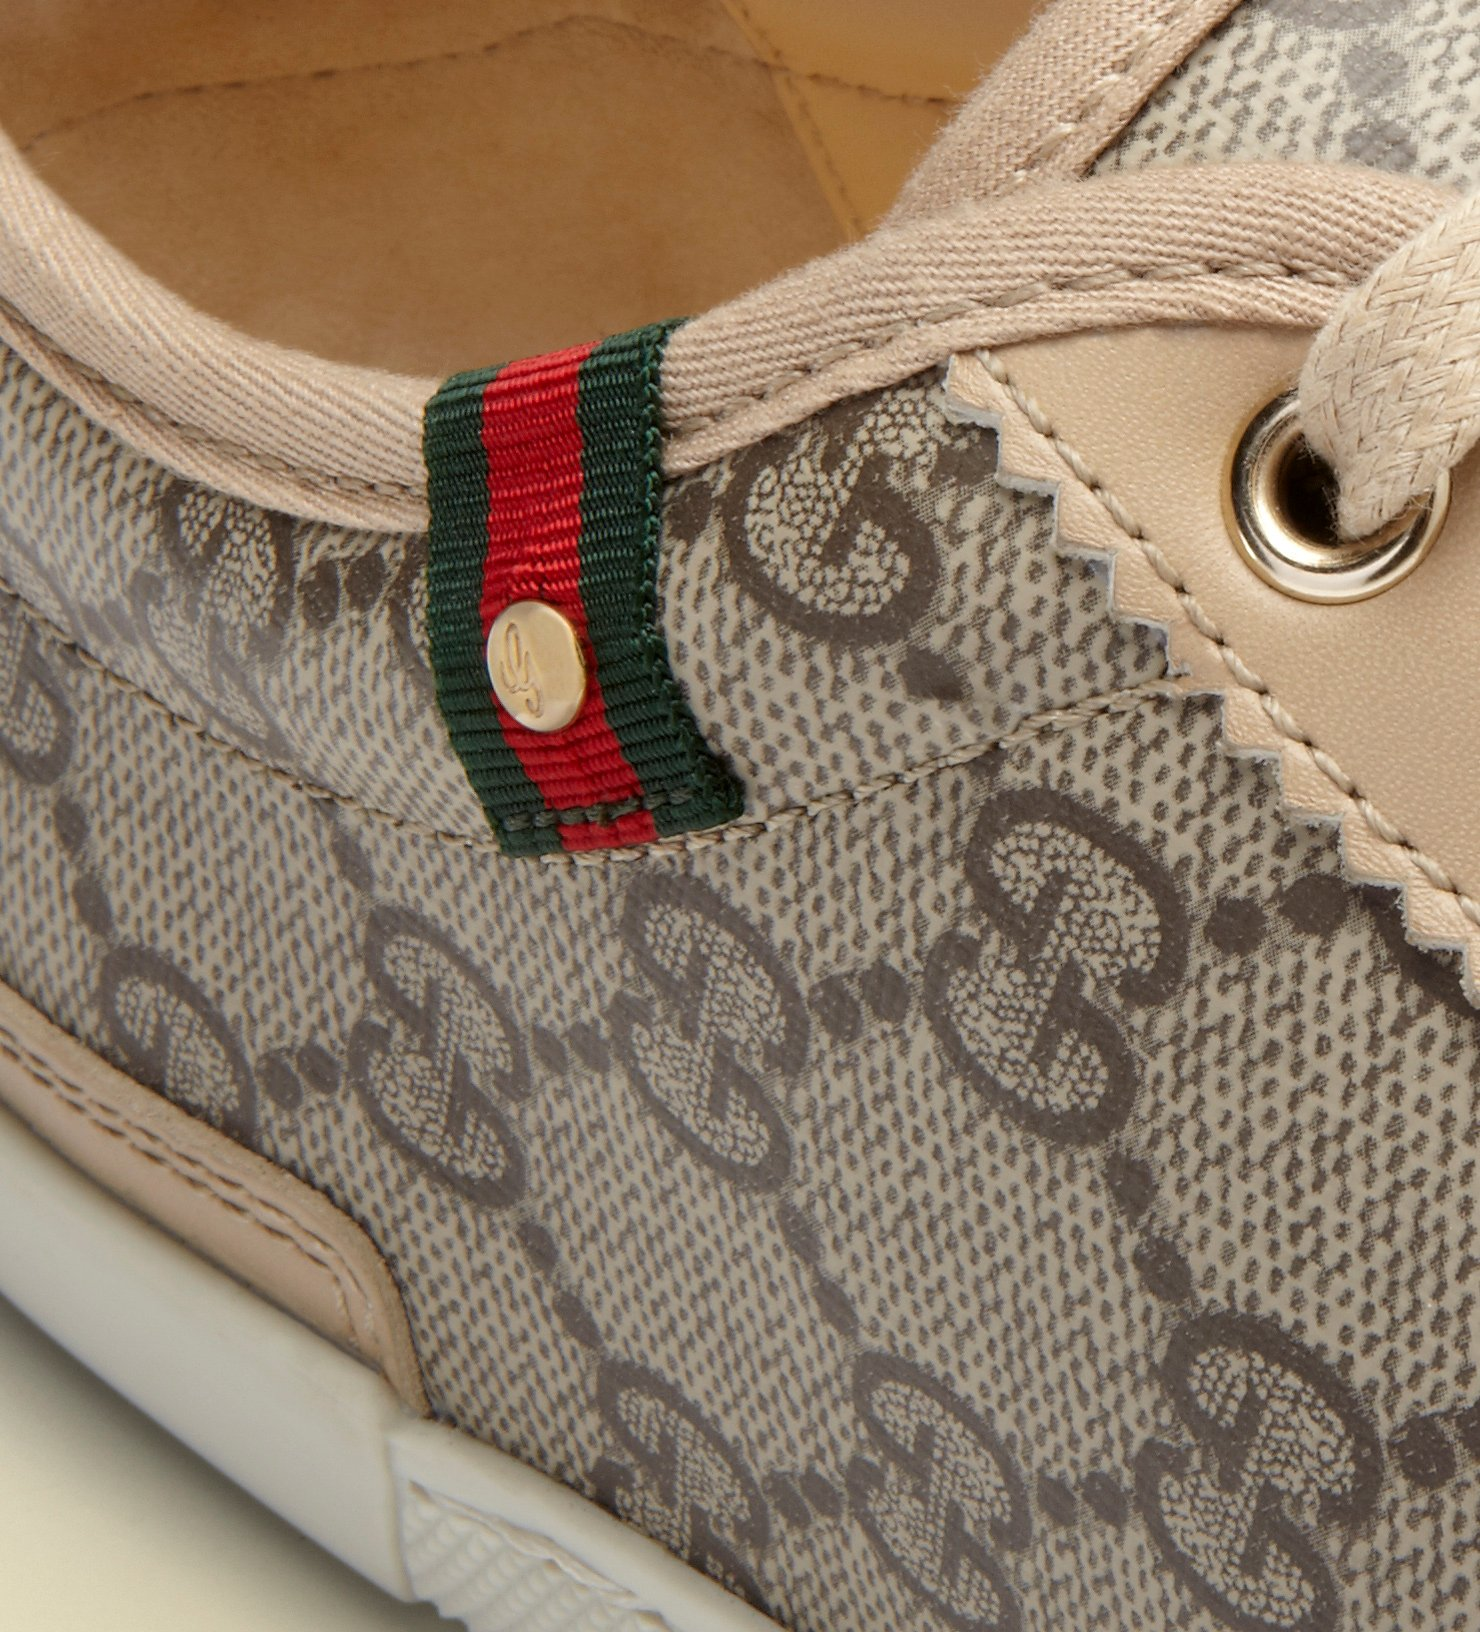 d2adaa4baa190 Lyst - Gucci Barcelona Gg Supreme Canvas Sneaker in Gray